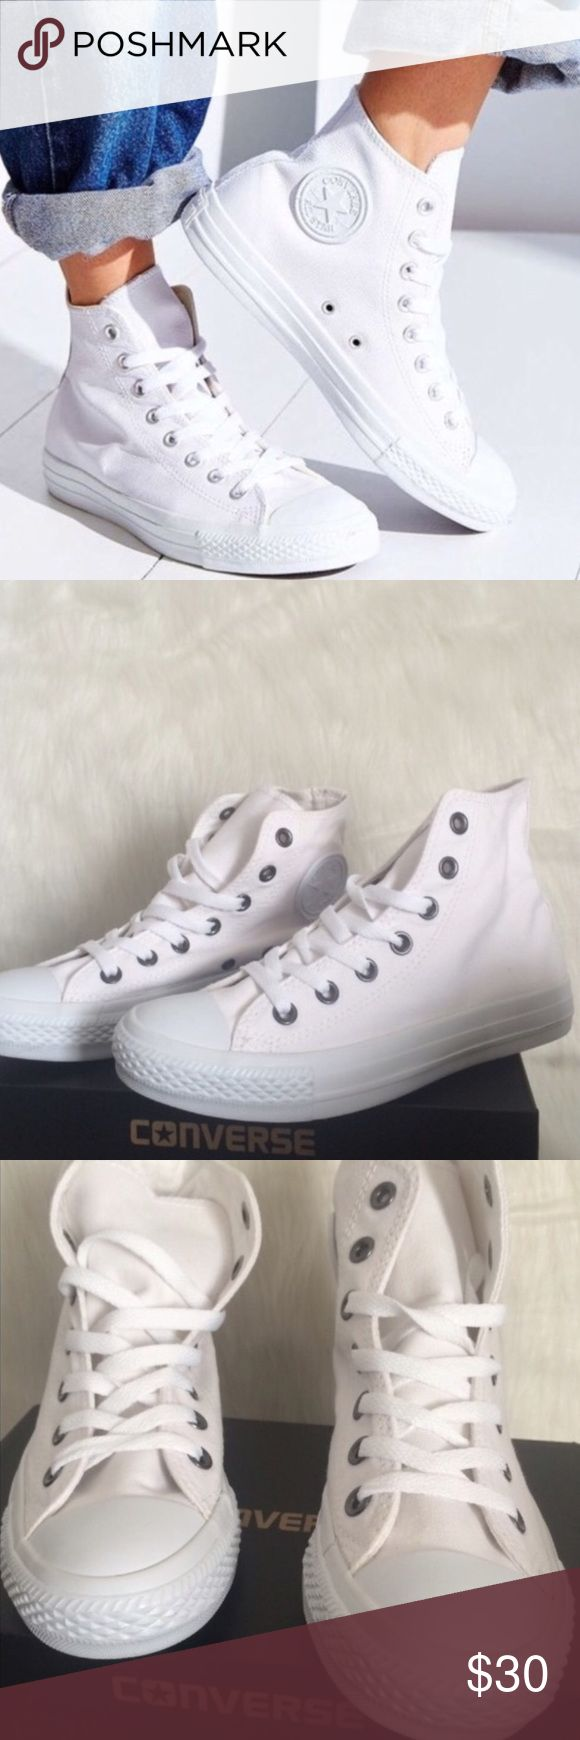 🎉1 HOUR SALE! CONVERSE WOMENS SIZE 6.5 ALL WHITE In like new condition. No box Converse Shoes Sneakers